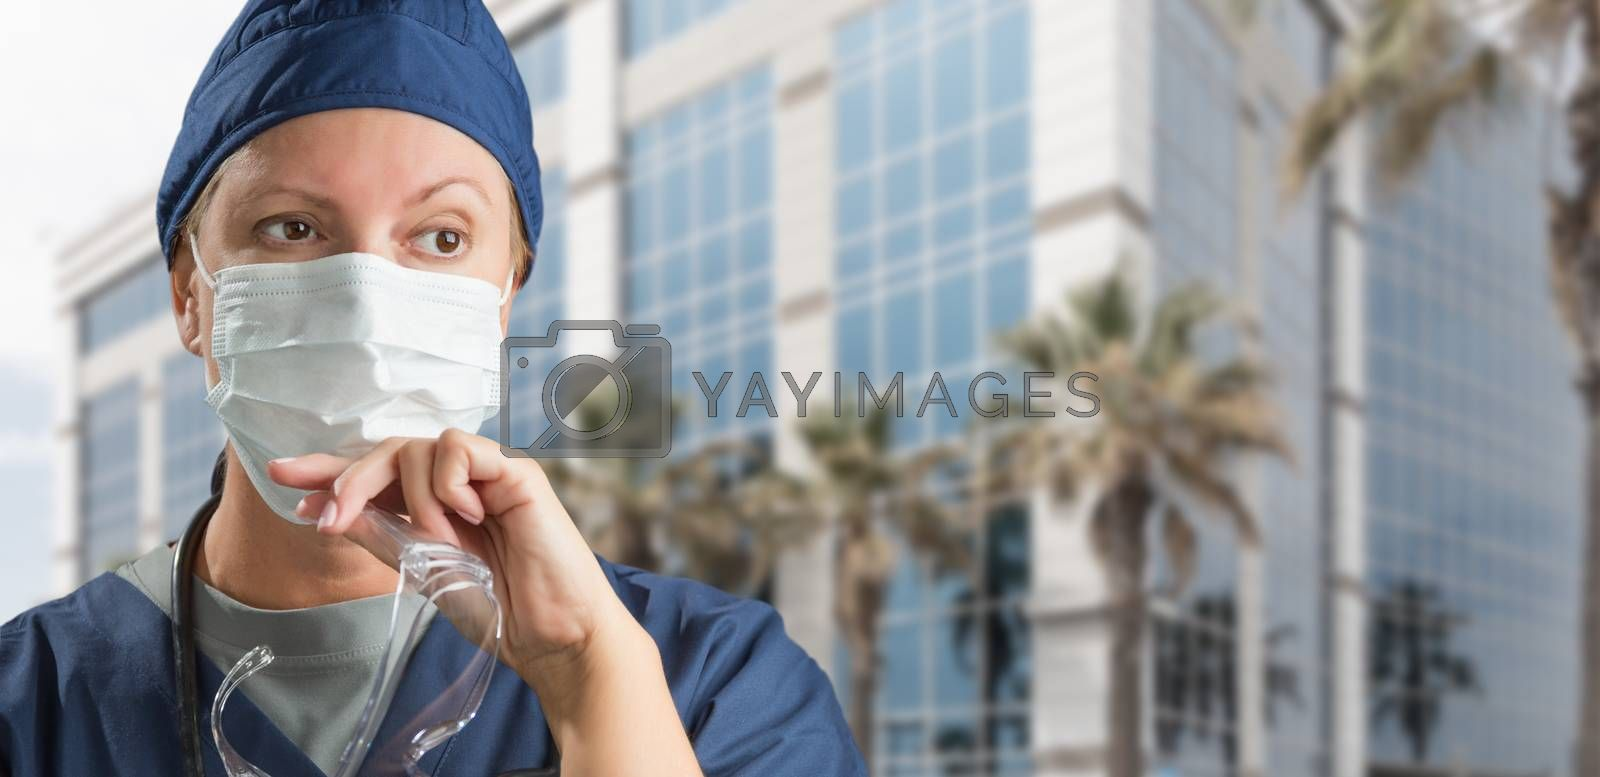 Female Doctor or Nurse Wearing Scrubs, Protective Face Mask and  by Feverpitched